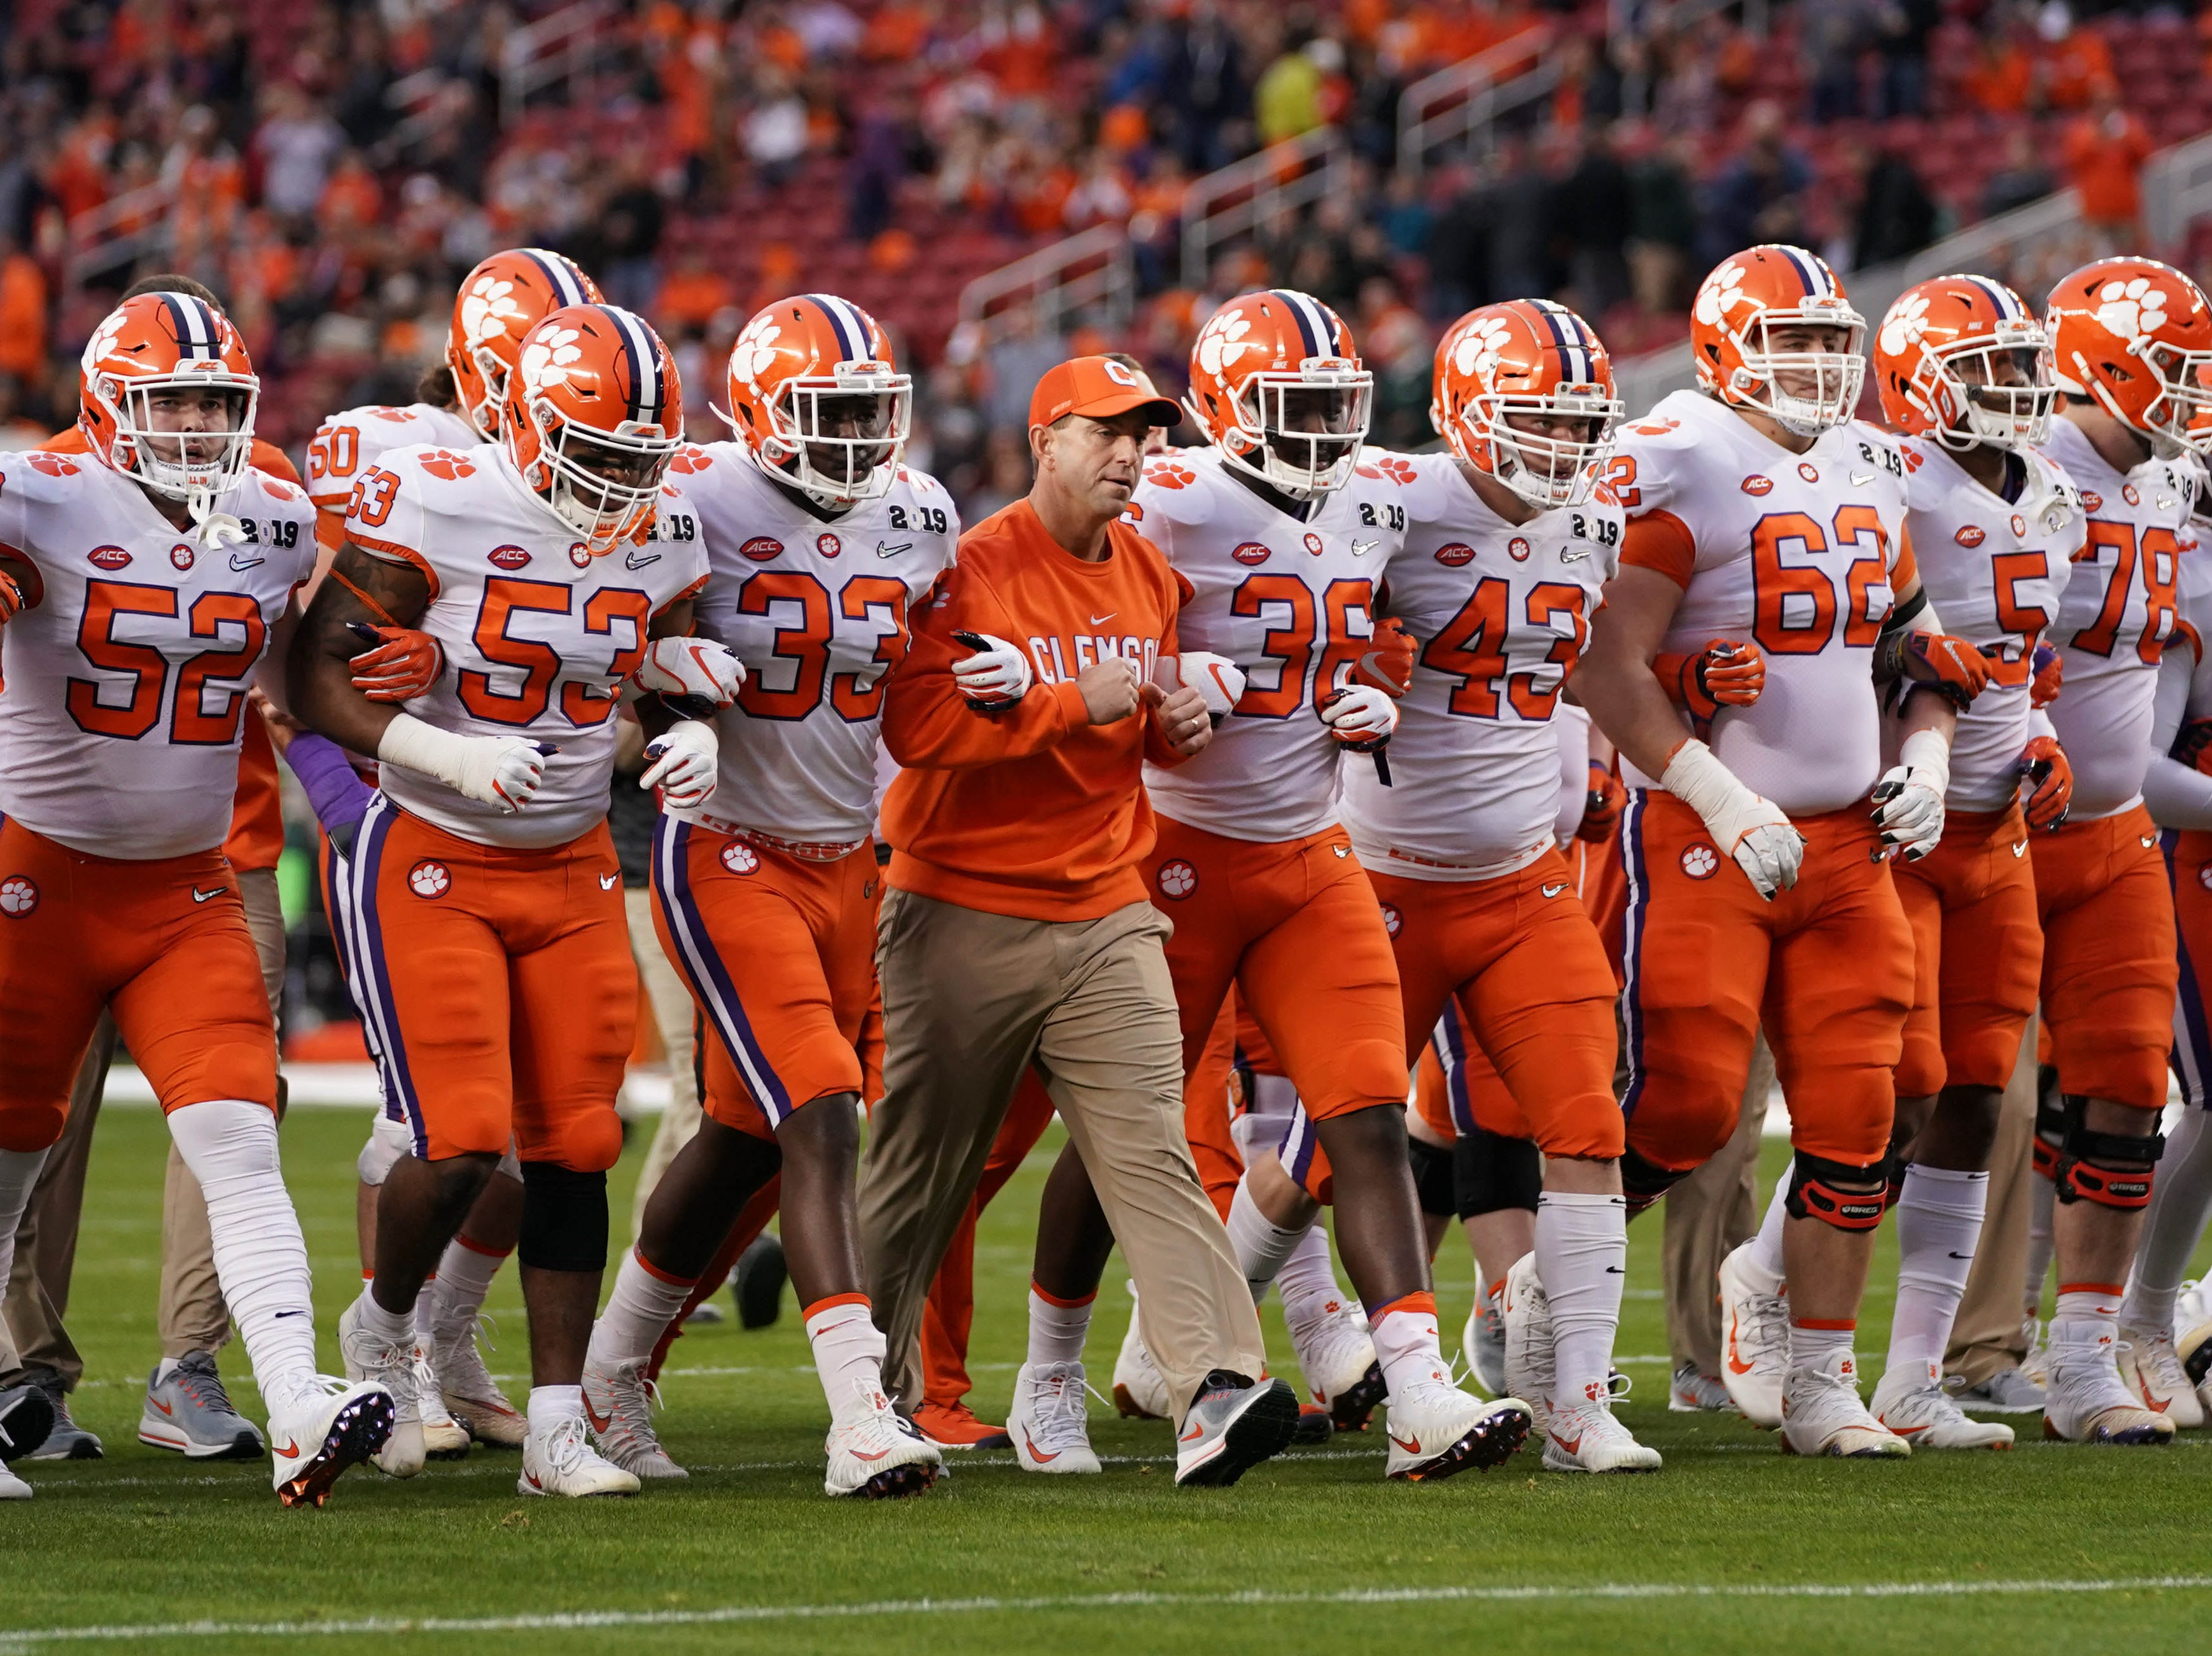 Dabo Swinney locks arms with his team before the game.